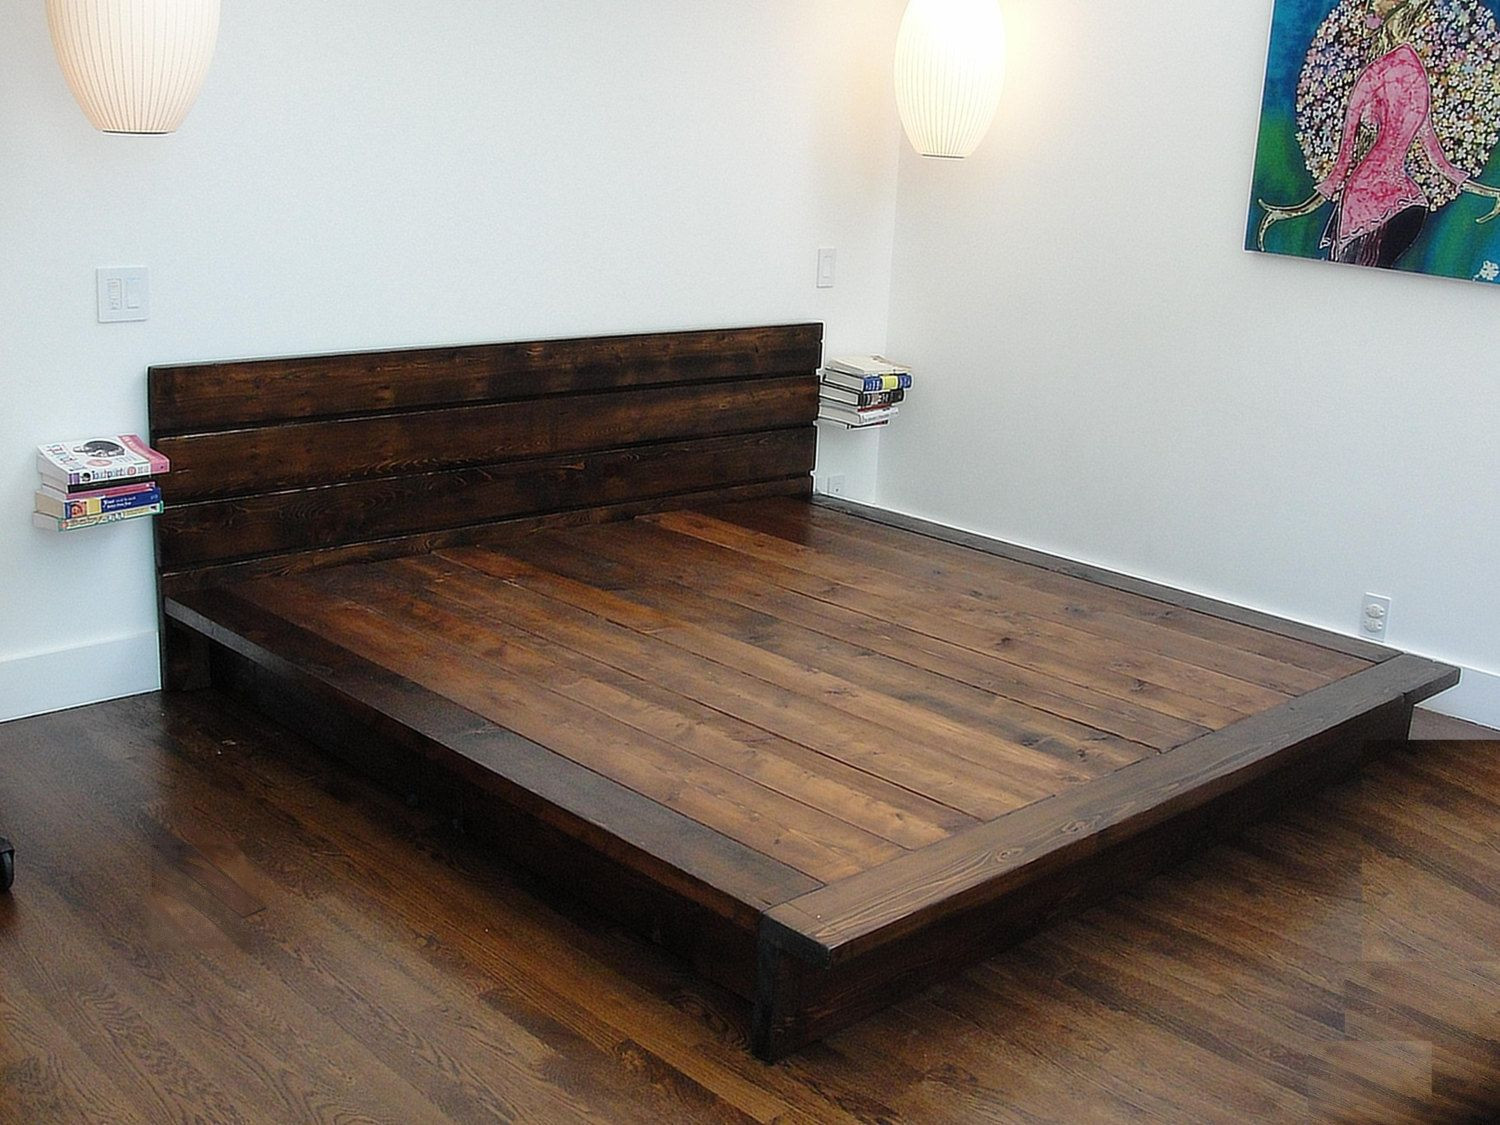 Best ideas about DIY Wood Beds . Save or Pin reclaimed wood platform bed rustic modern bed by wearemfeo Now.